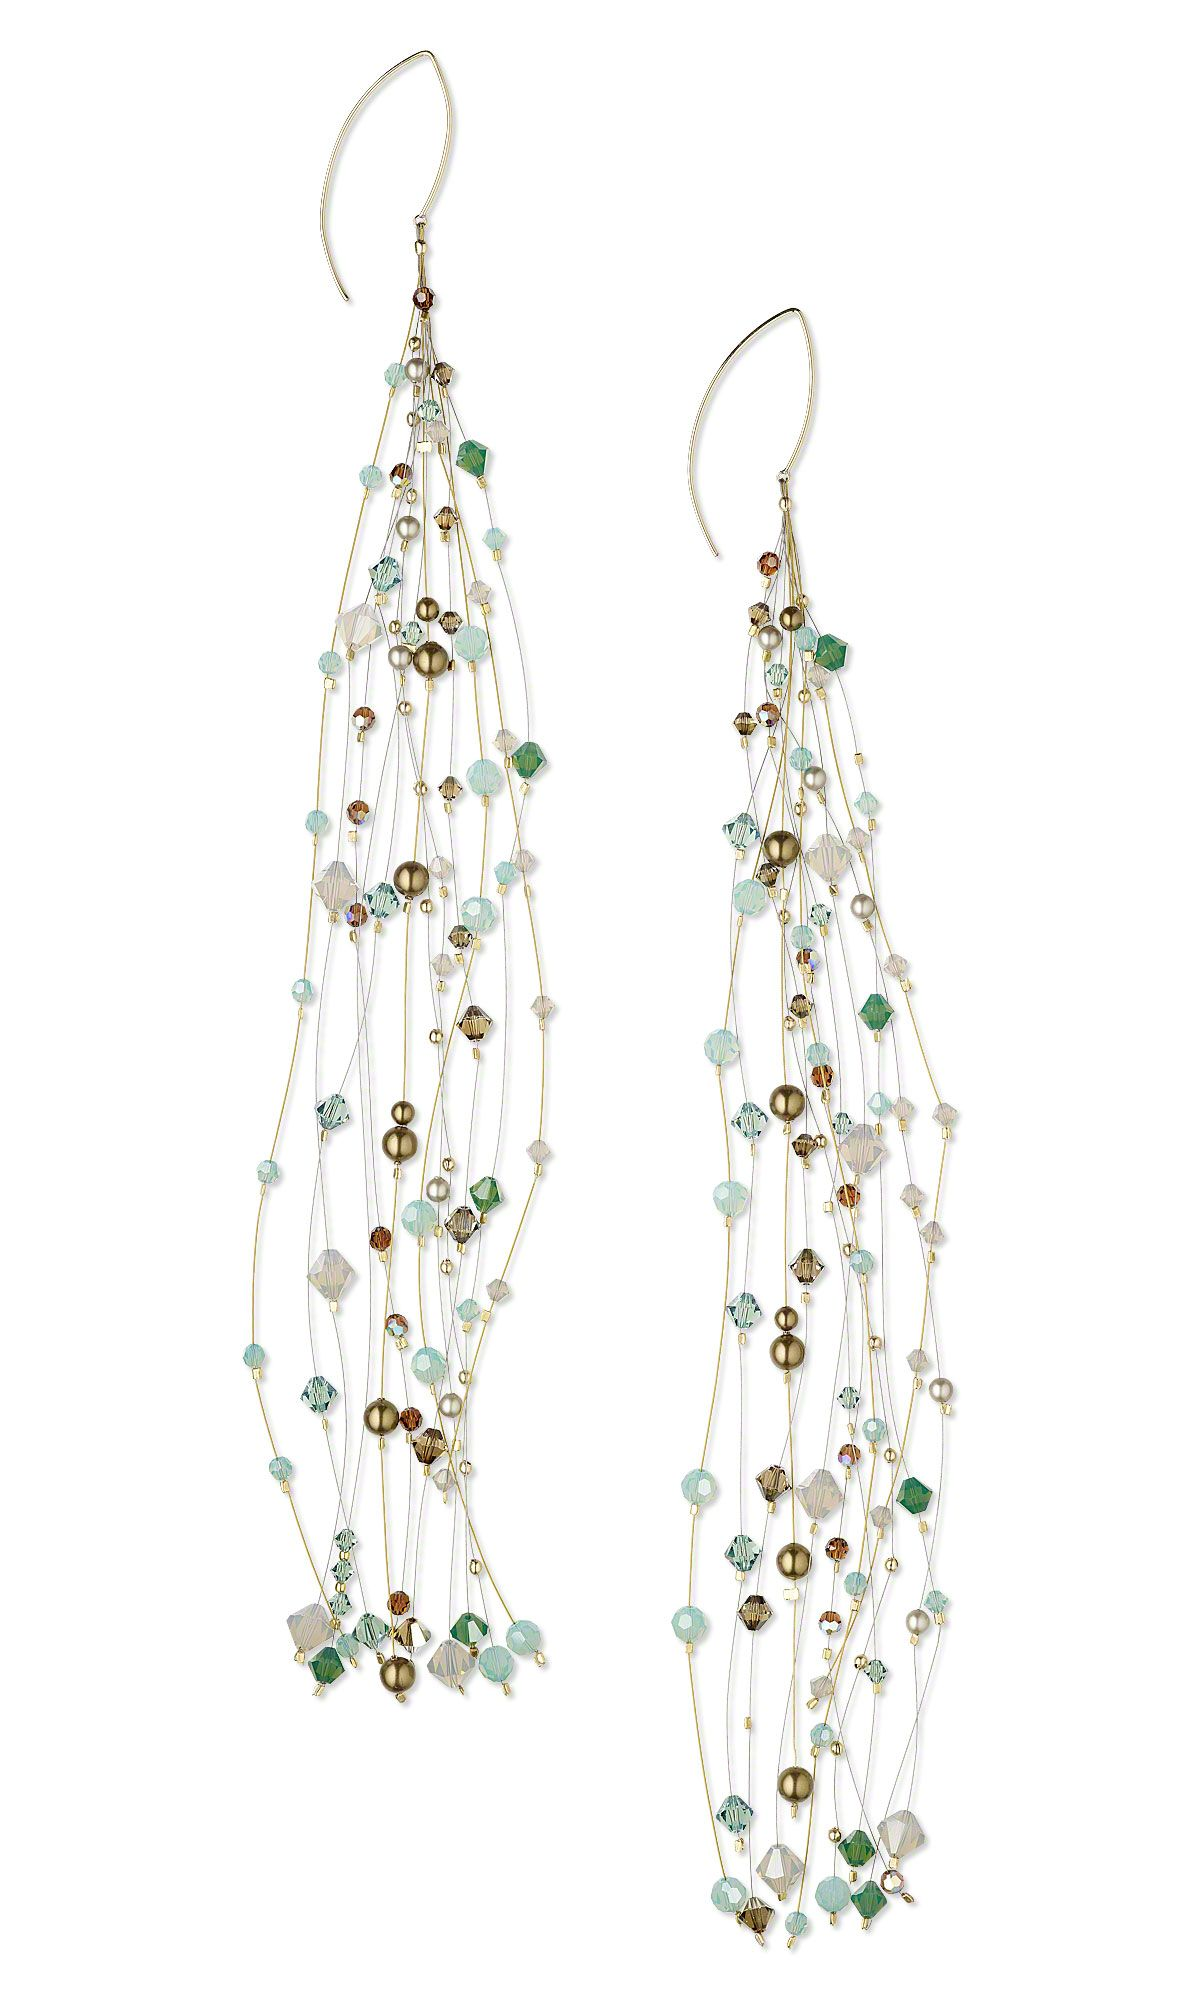 Jewelry Design - Earrings with Swarovski Crystal Beads and Pearls ...